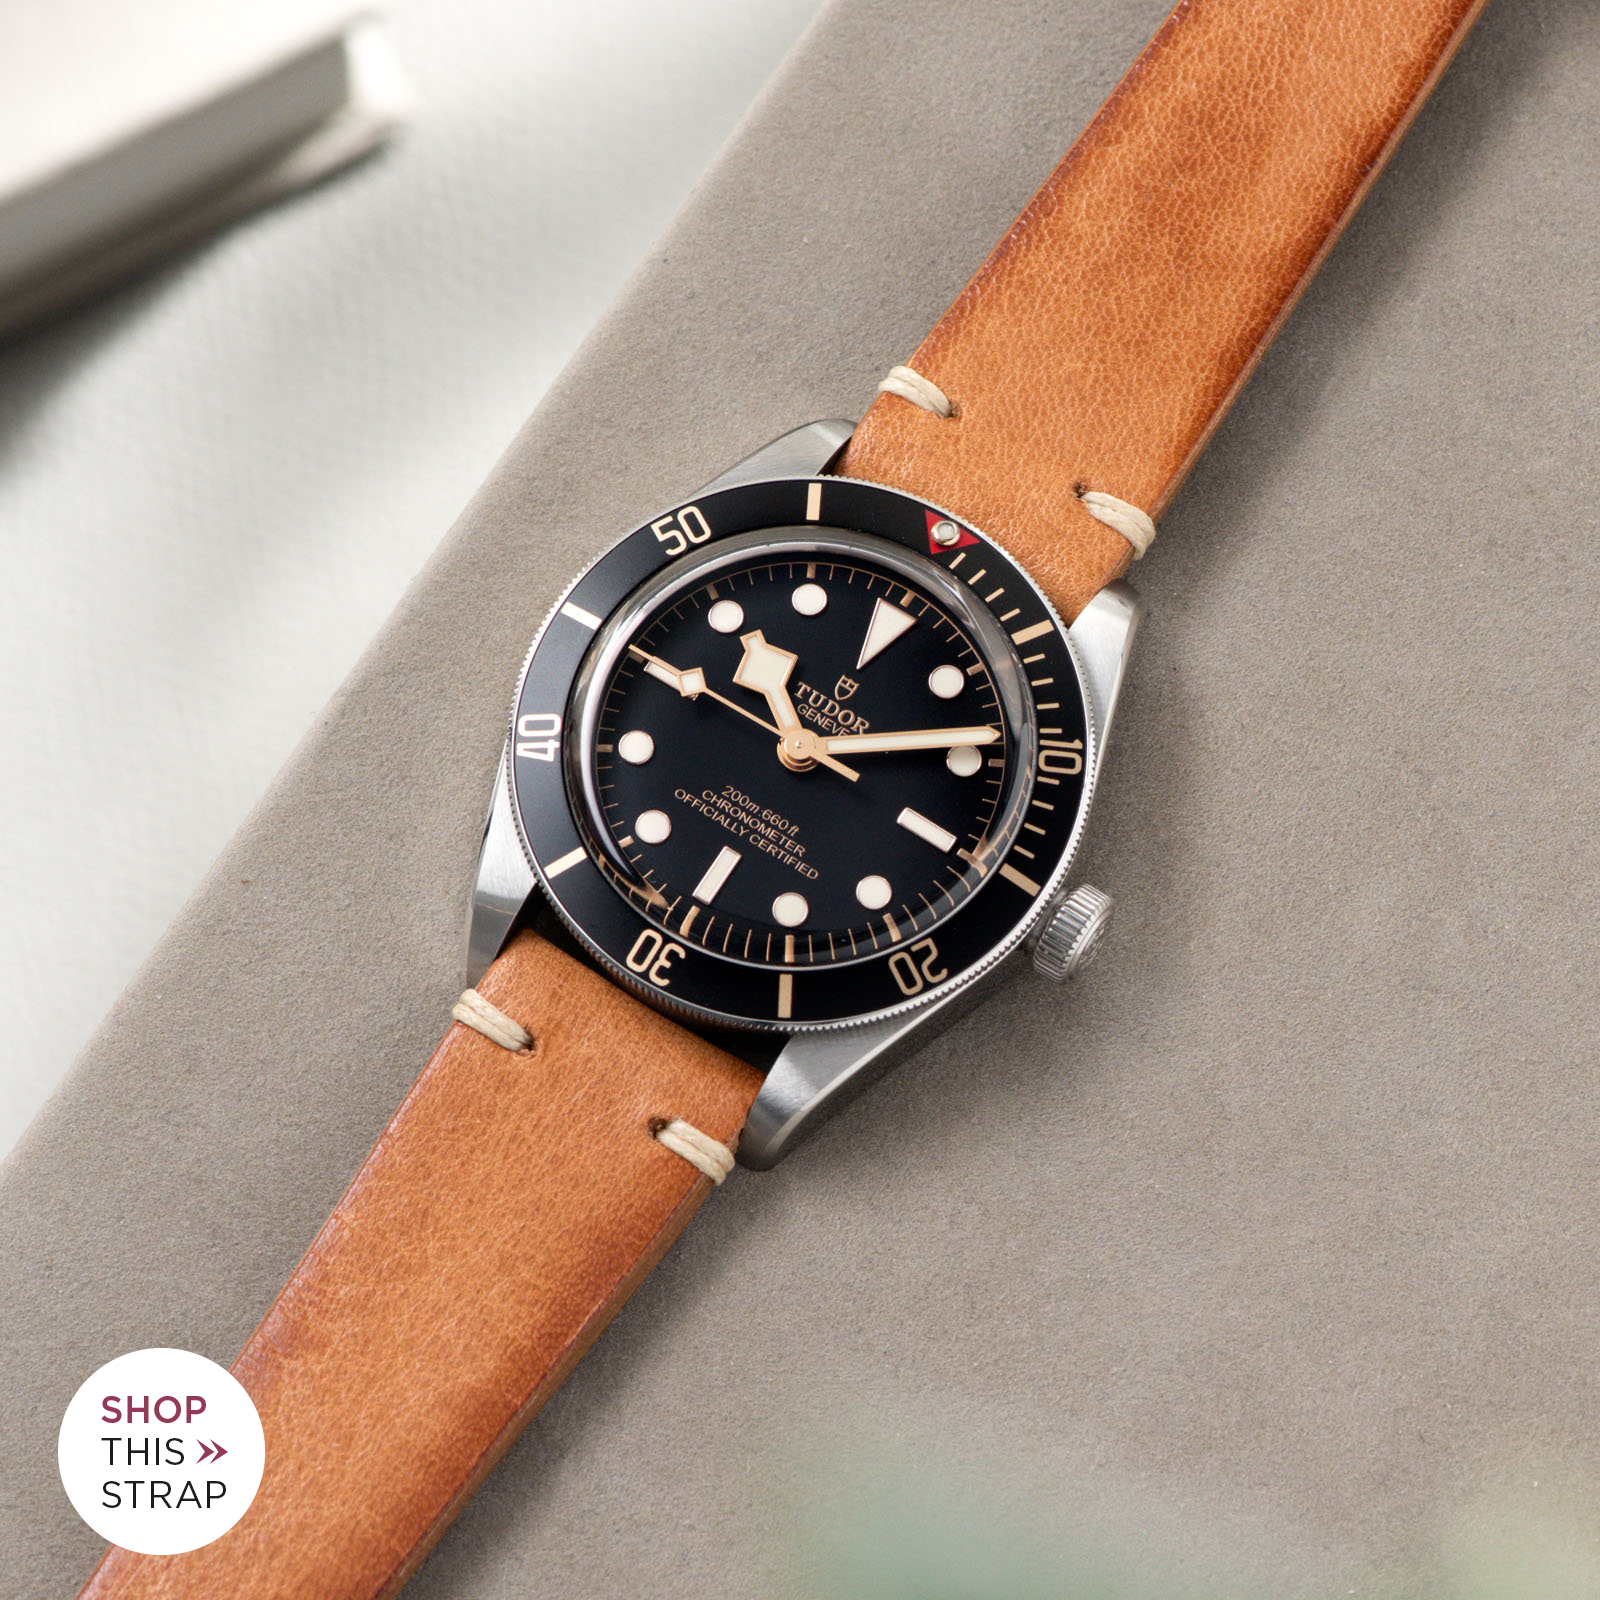 Bulang and Sons_Strap Guide_Tudor Black Bay 58_Caramel Brown Leather Watch Strap